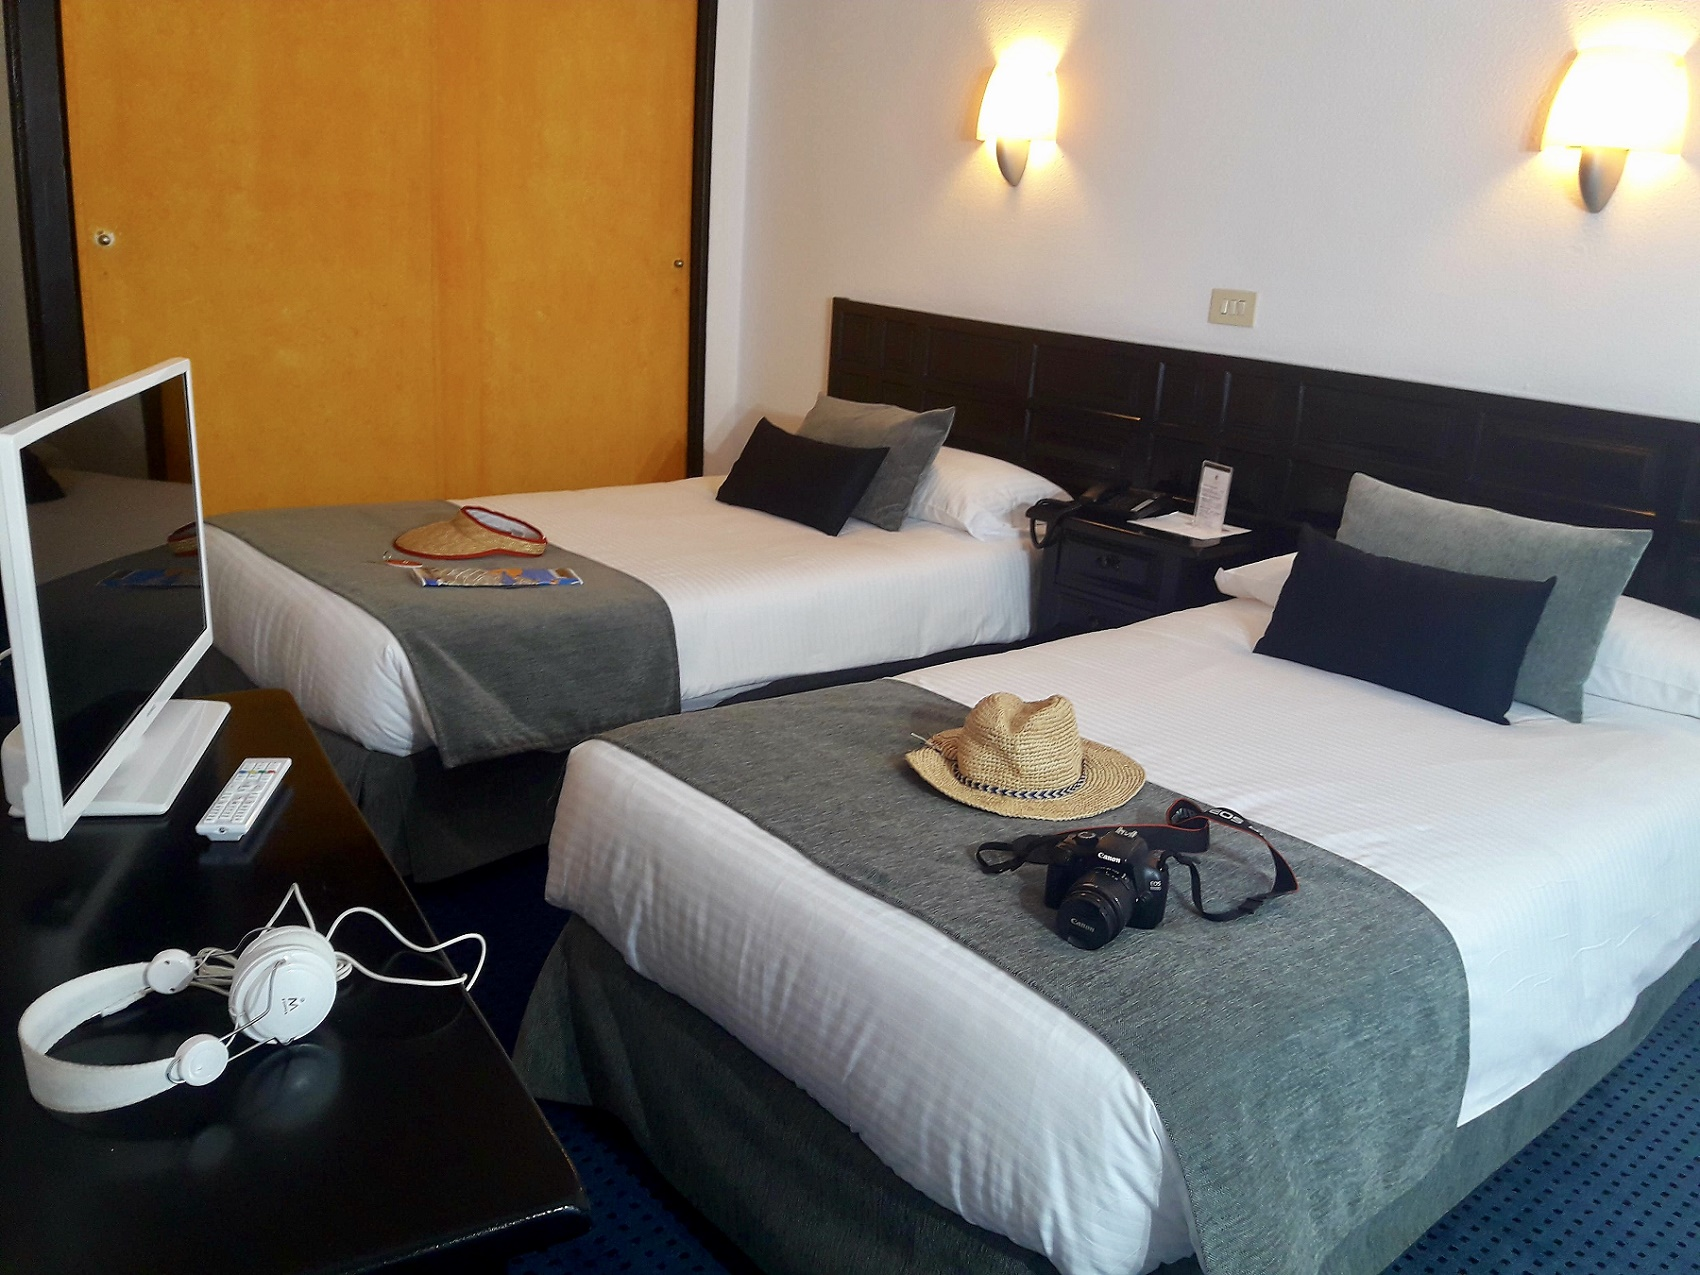 DOUBLE ROOM 2 ADULTS + 1 CHILD Hotel Miramar